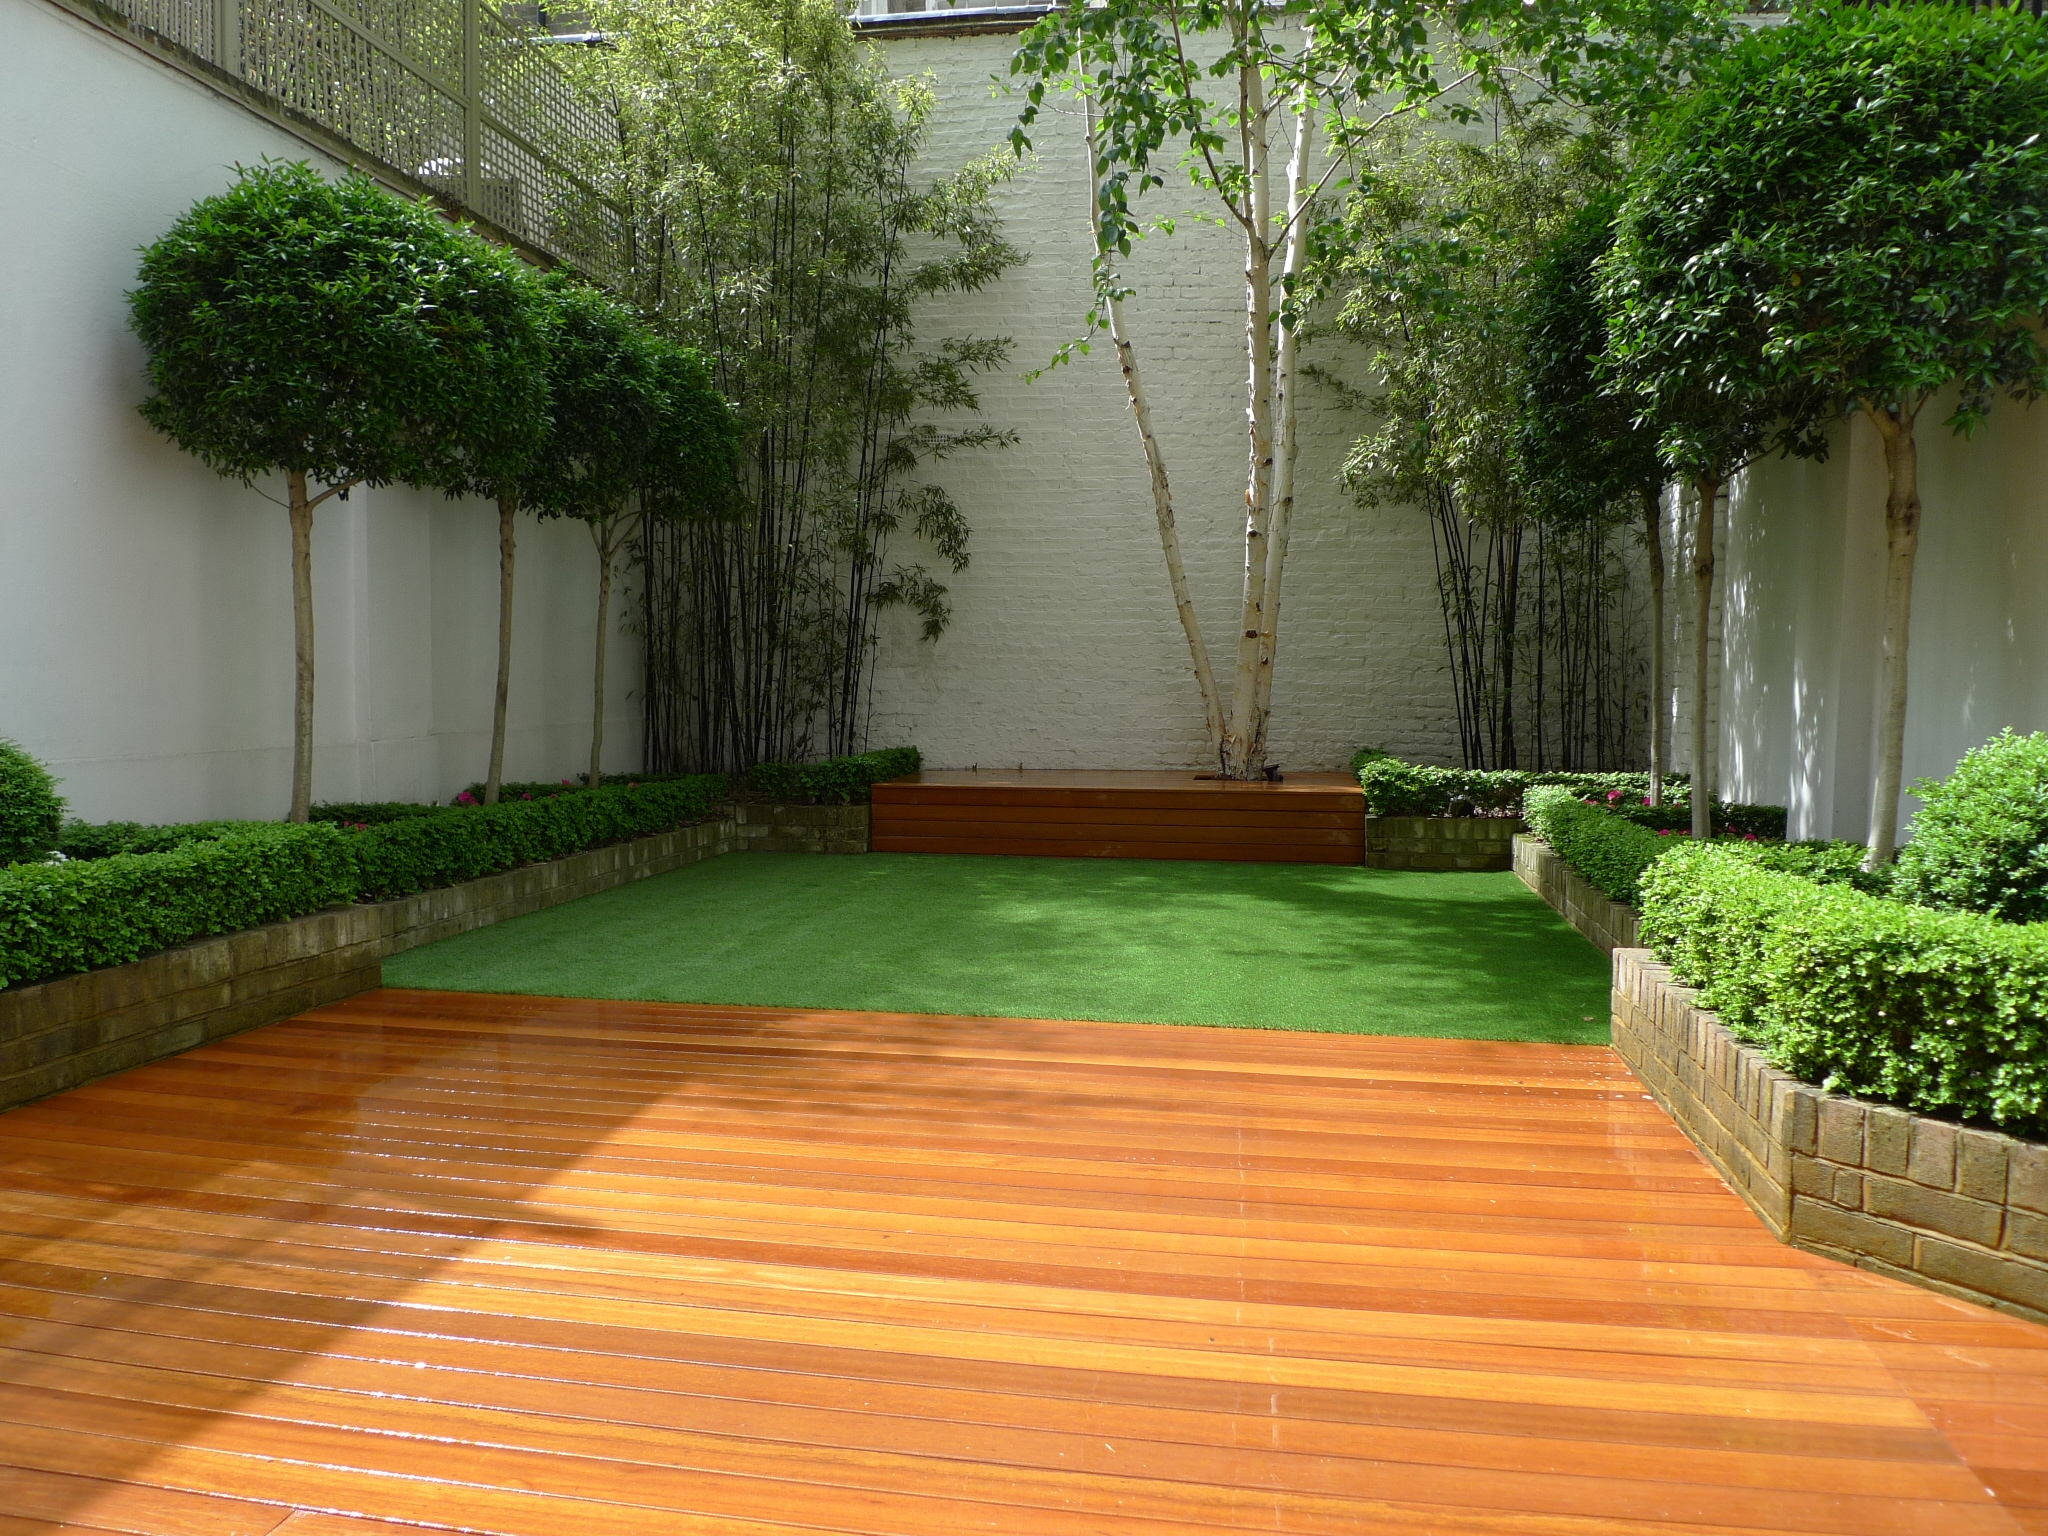 Chelsea garden design hardwood decking artificial grass for Garden design ideas artificial grass